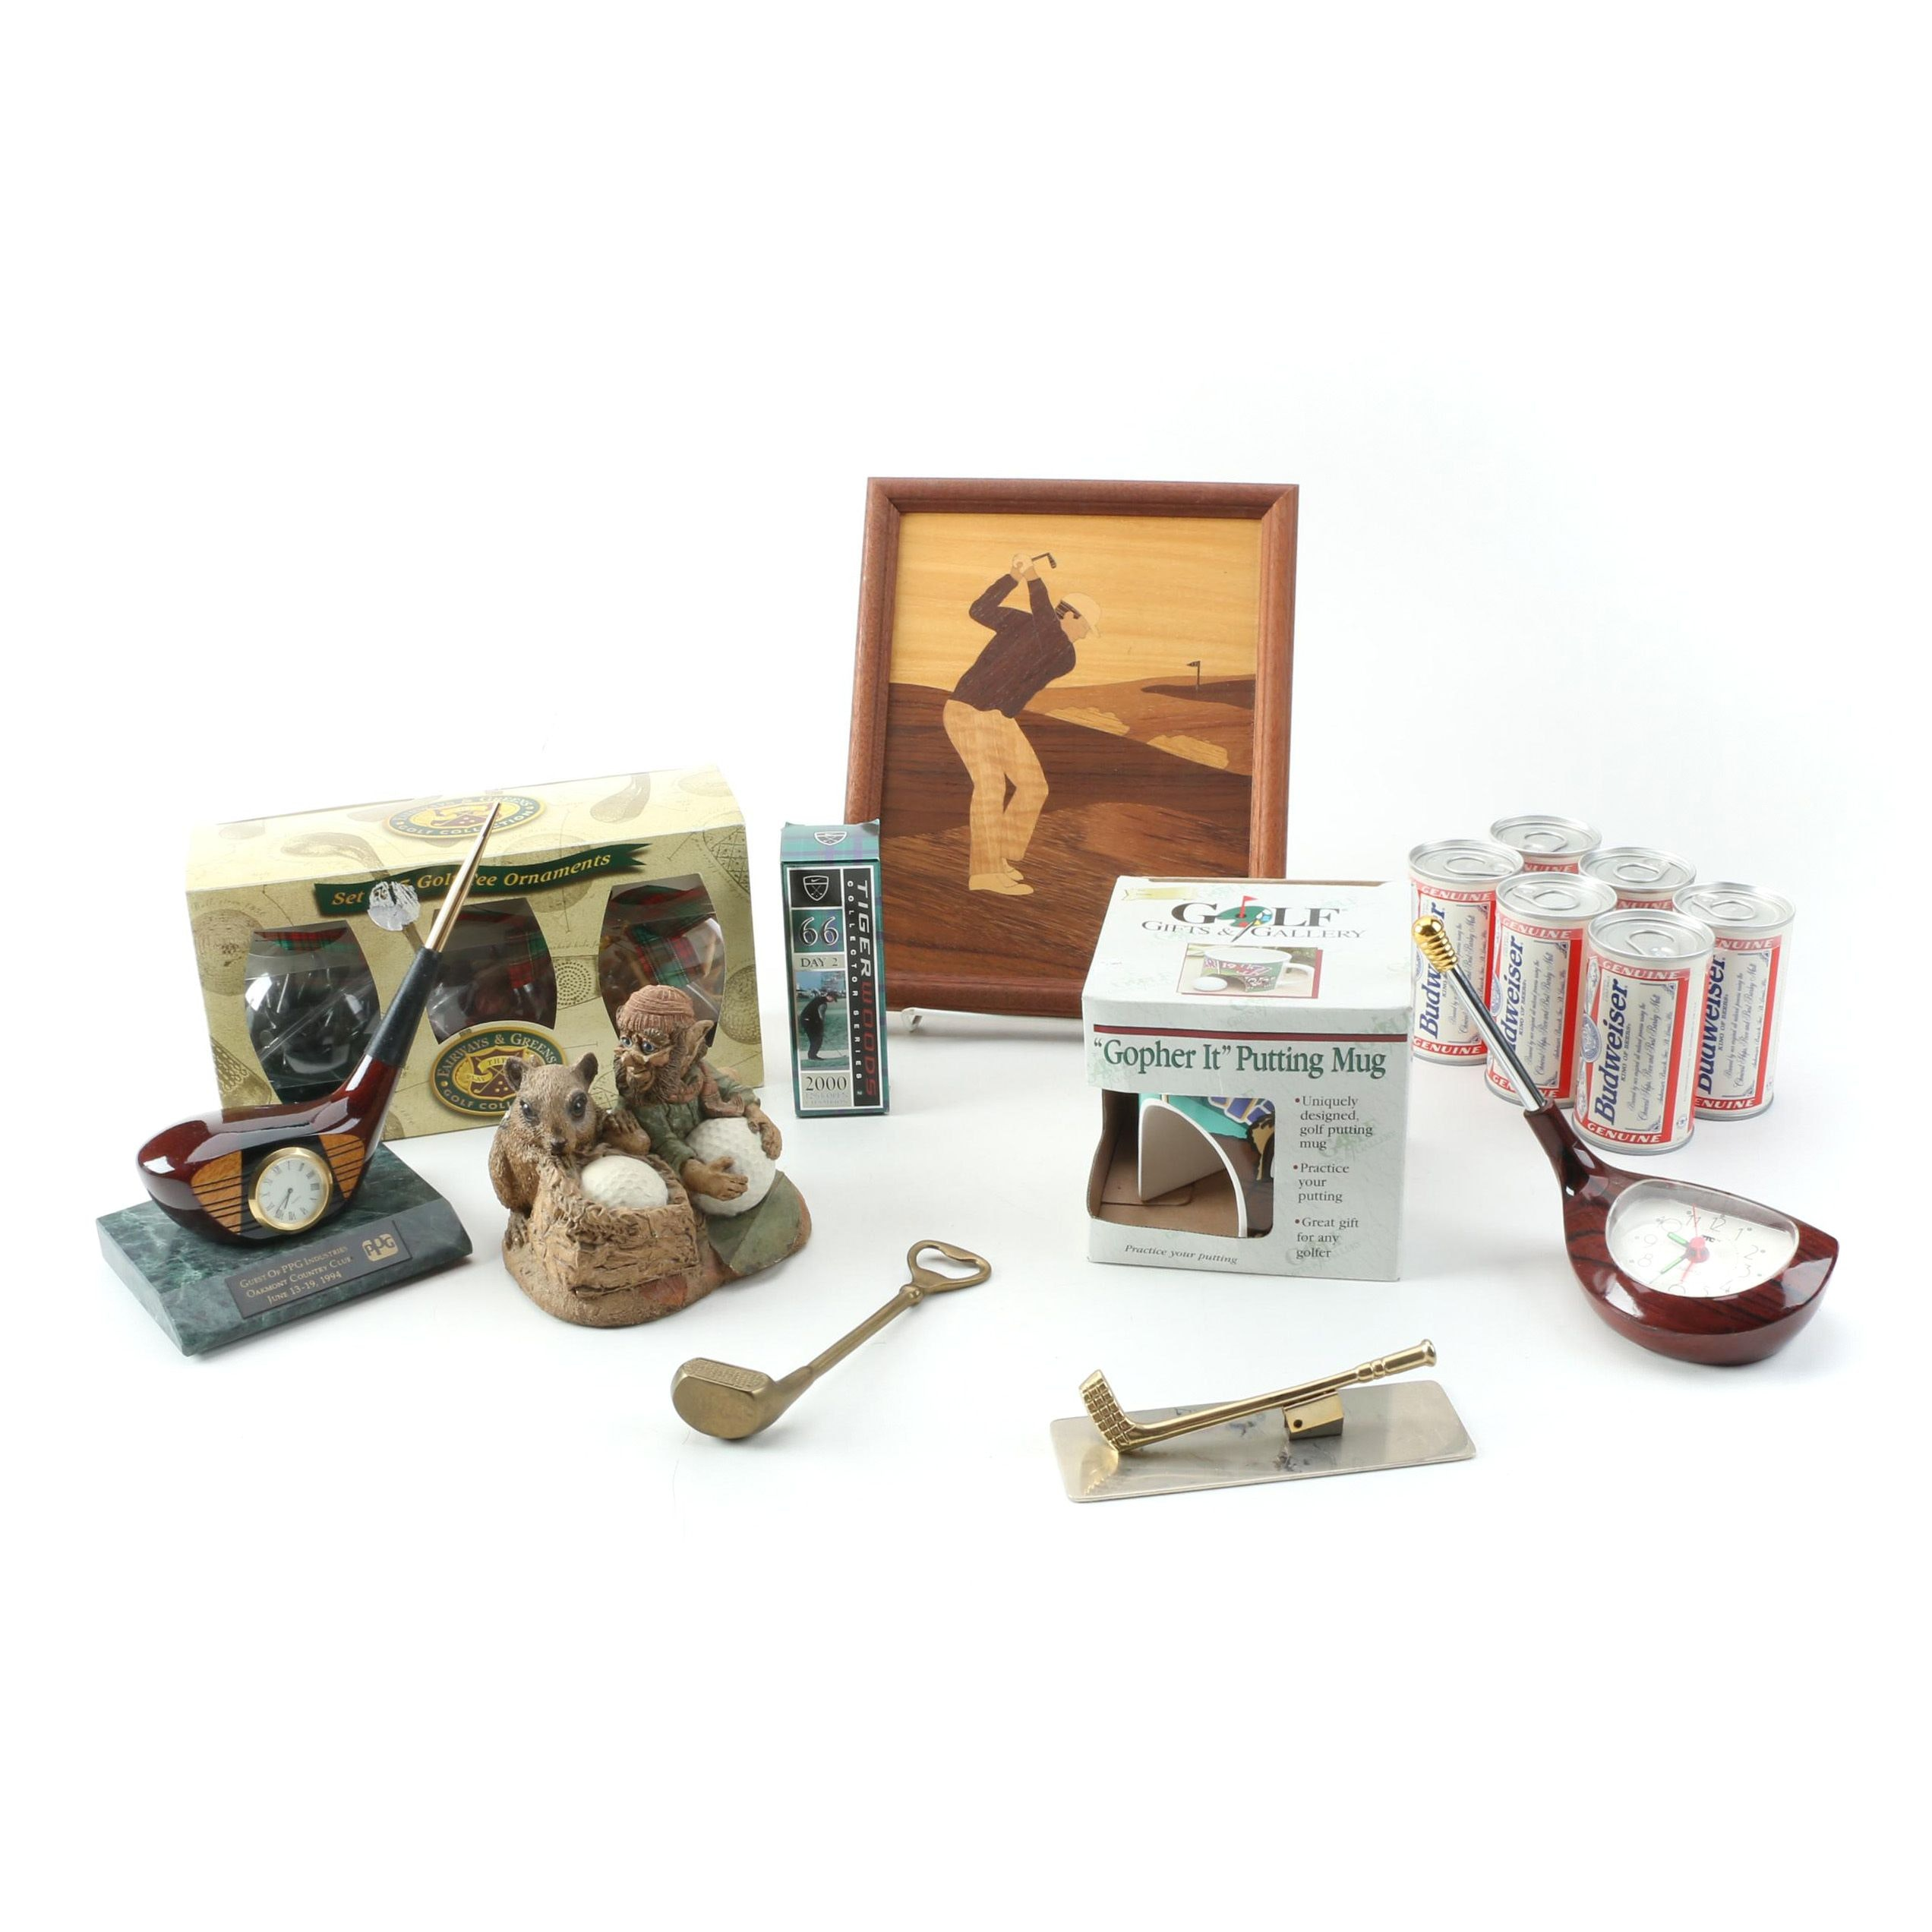 Golf Club Head Clock Paperweights, Bottle Openers, and Other Golf Collectibles